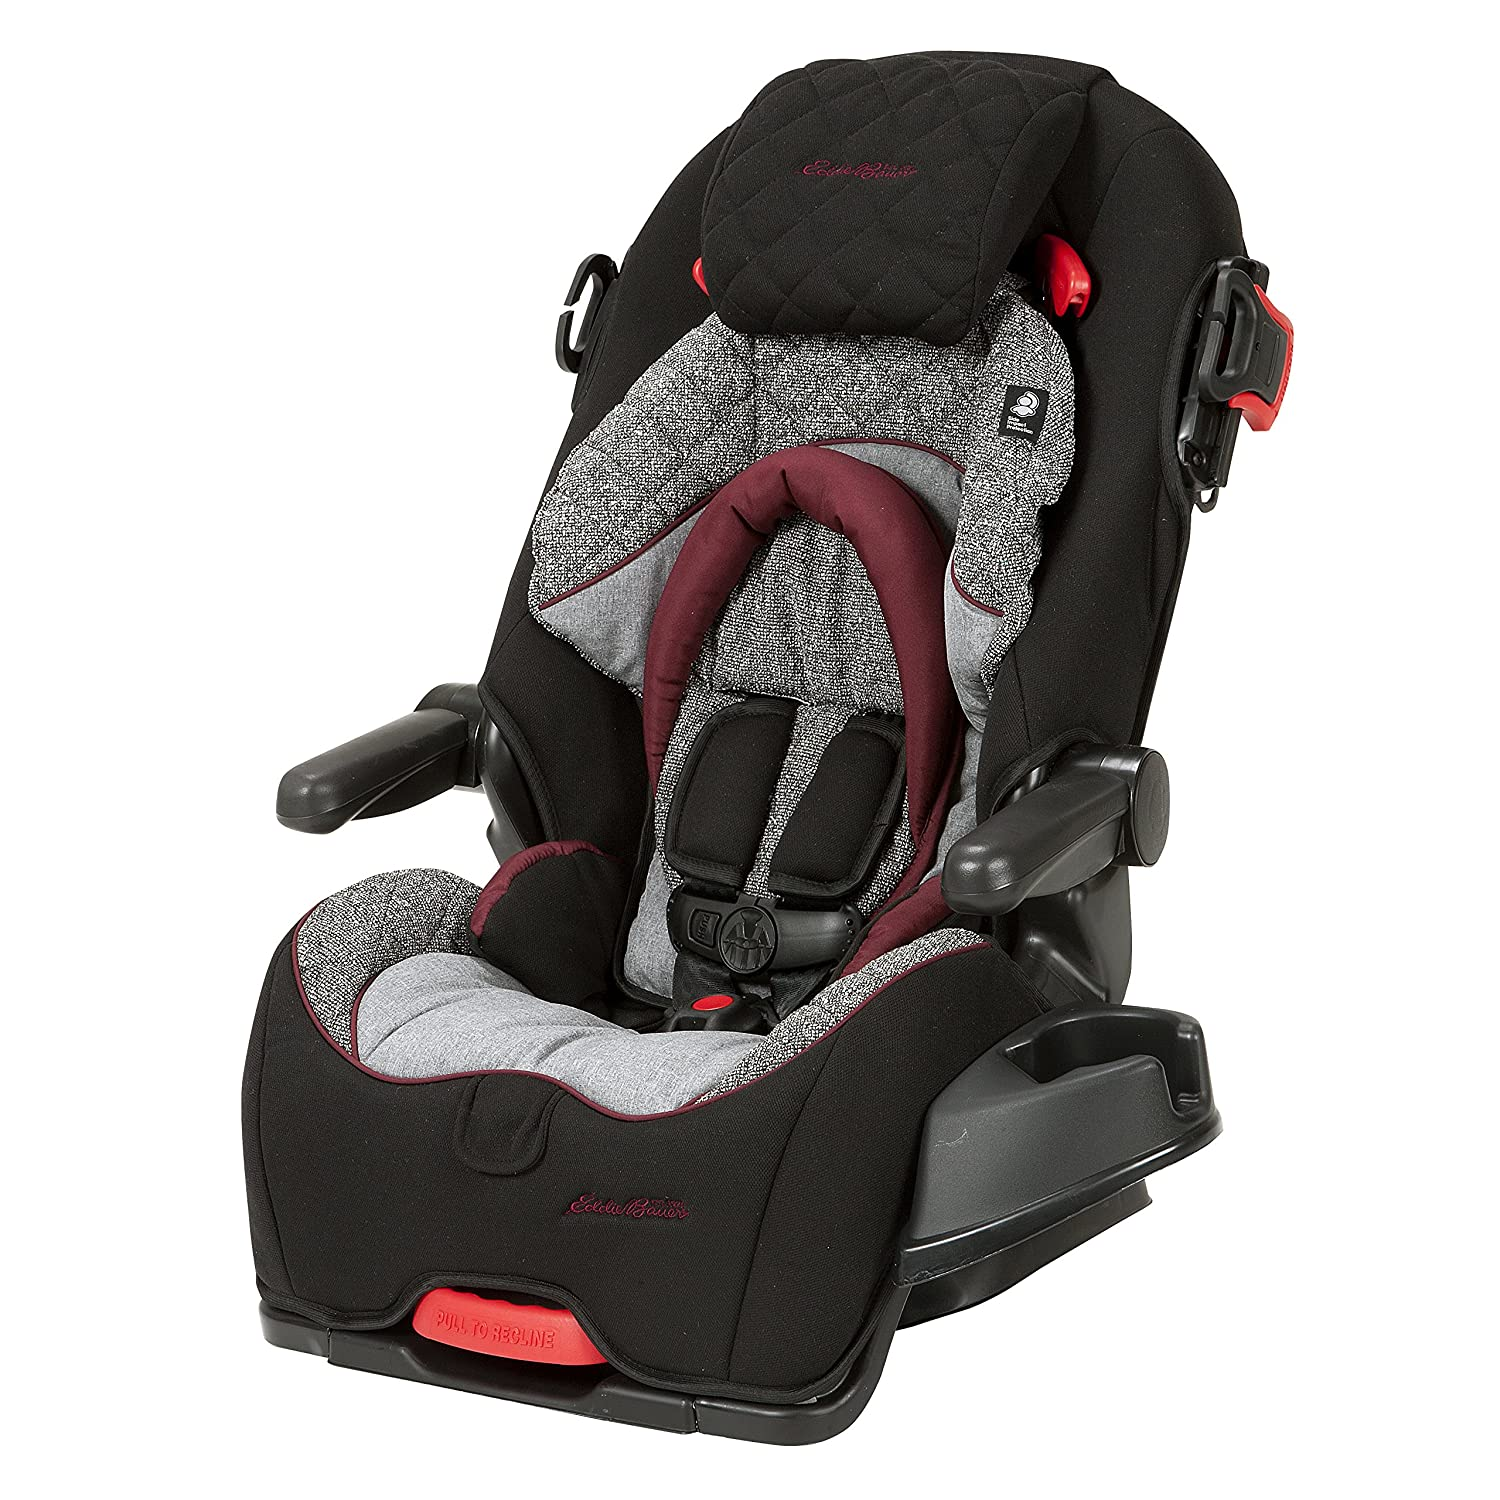 Amazon.com : Eddie Bauer Baby Deluxe 3-in-1 Convertible Car Seat ...